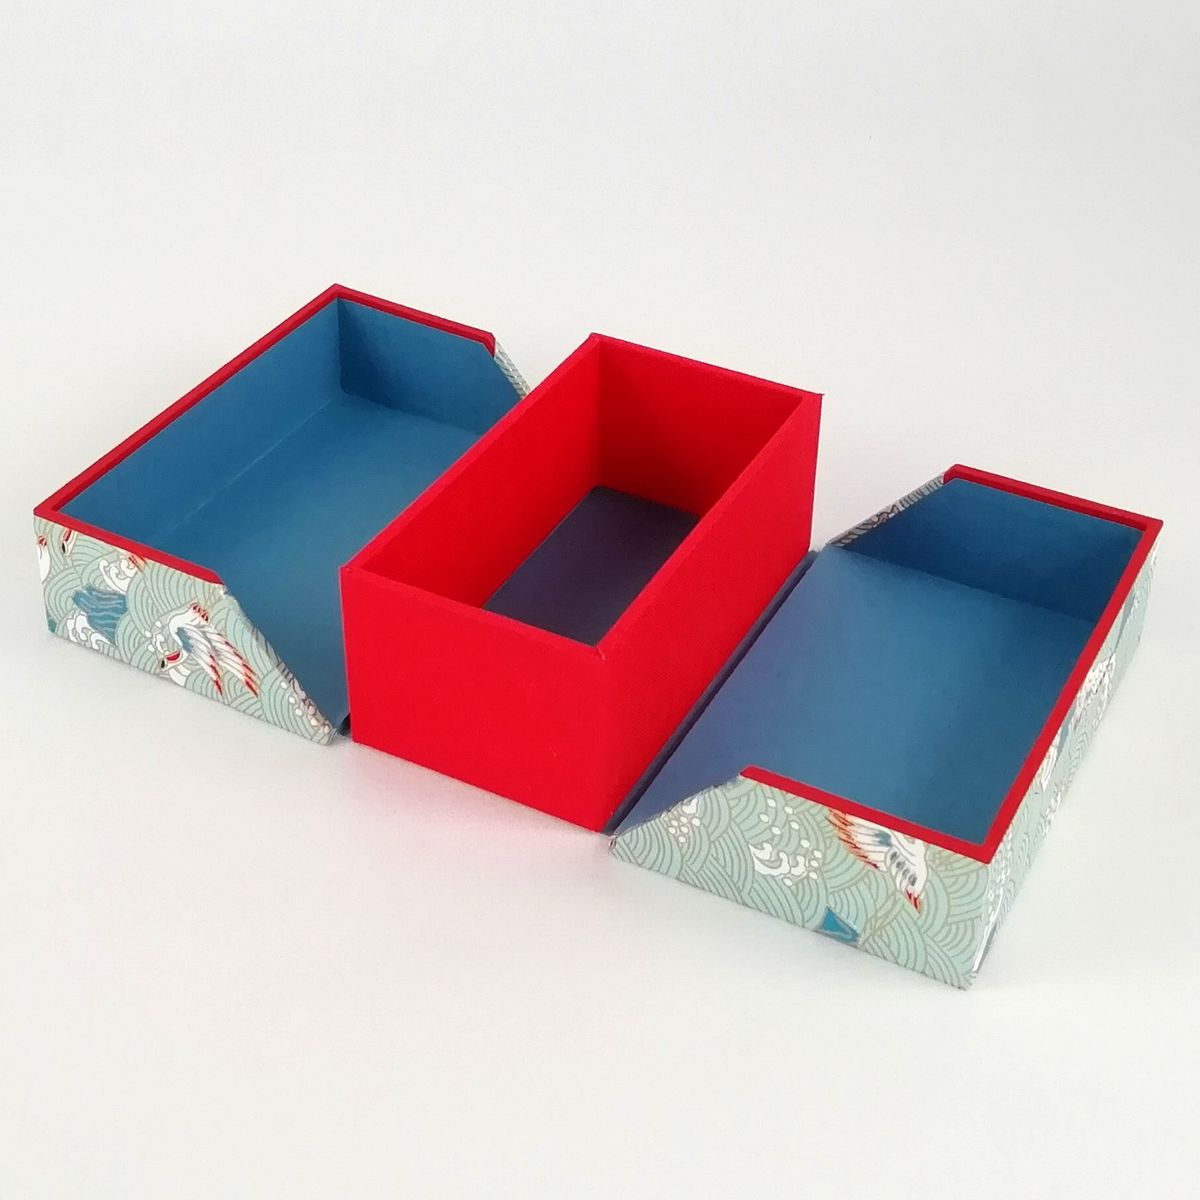 2020-05-02_Business card box, cranes light blue-red (4)